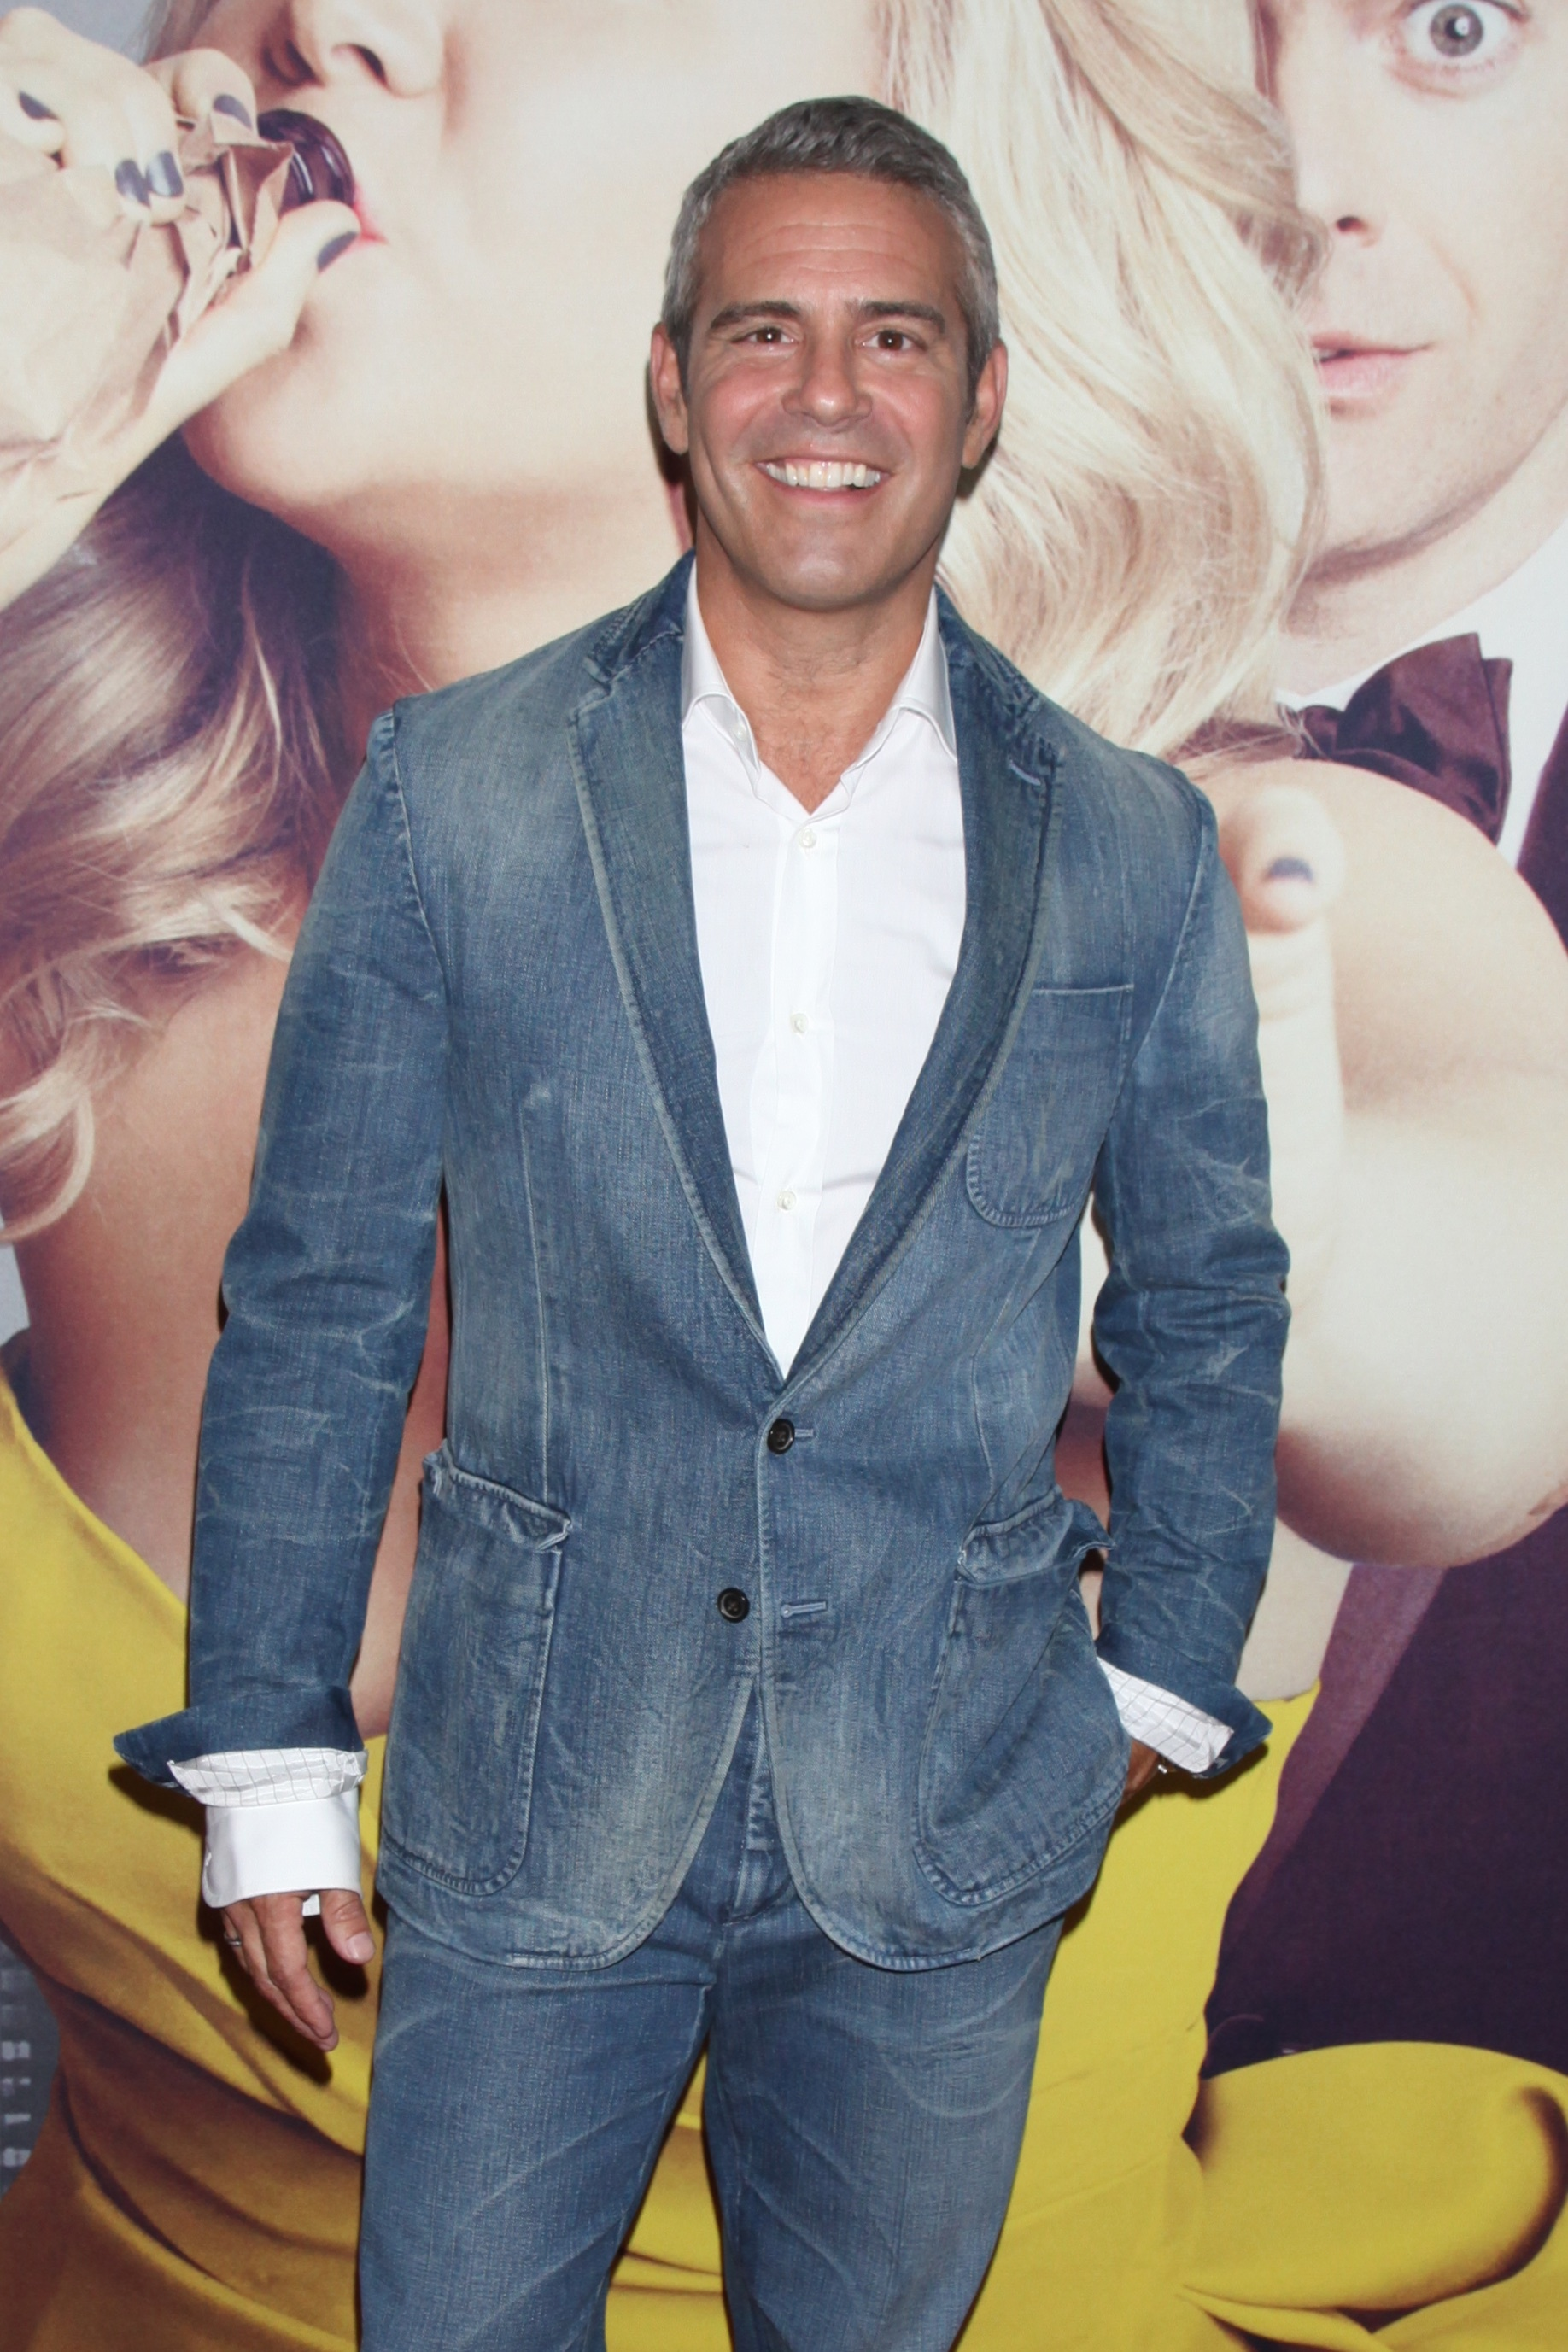 Andy Cohen slams Michael Strahan, defends Kelly Ripa